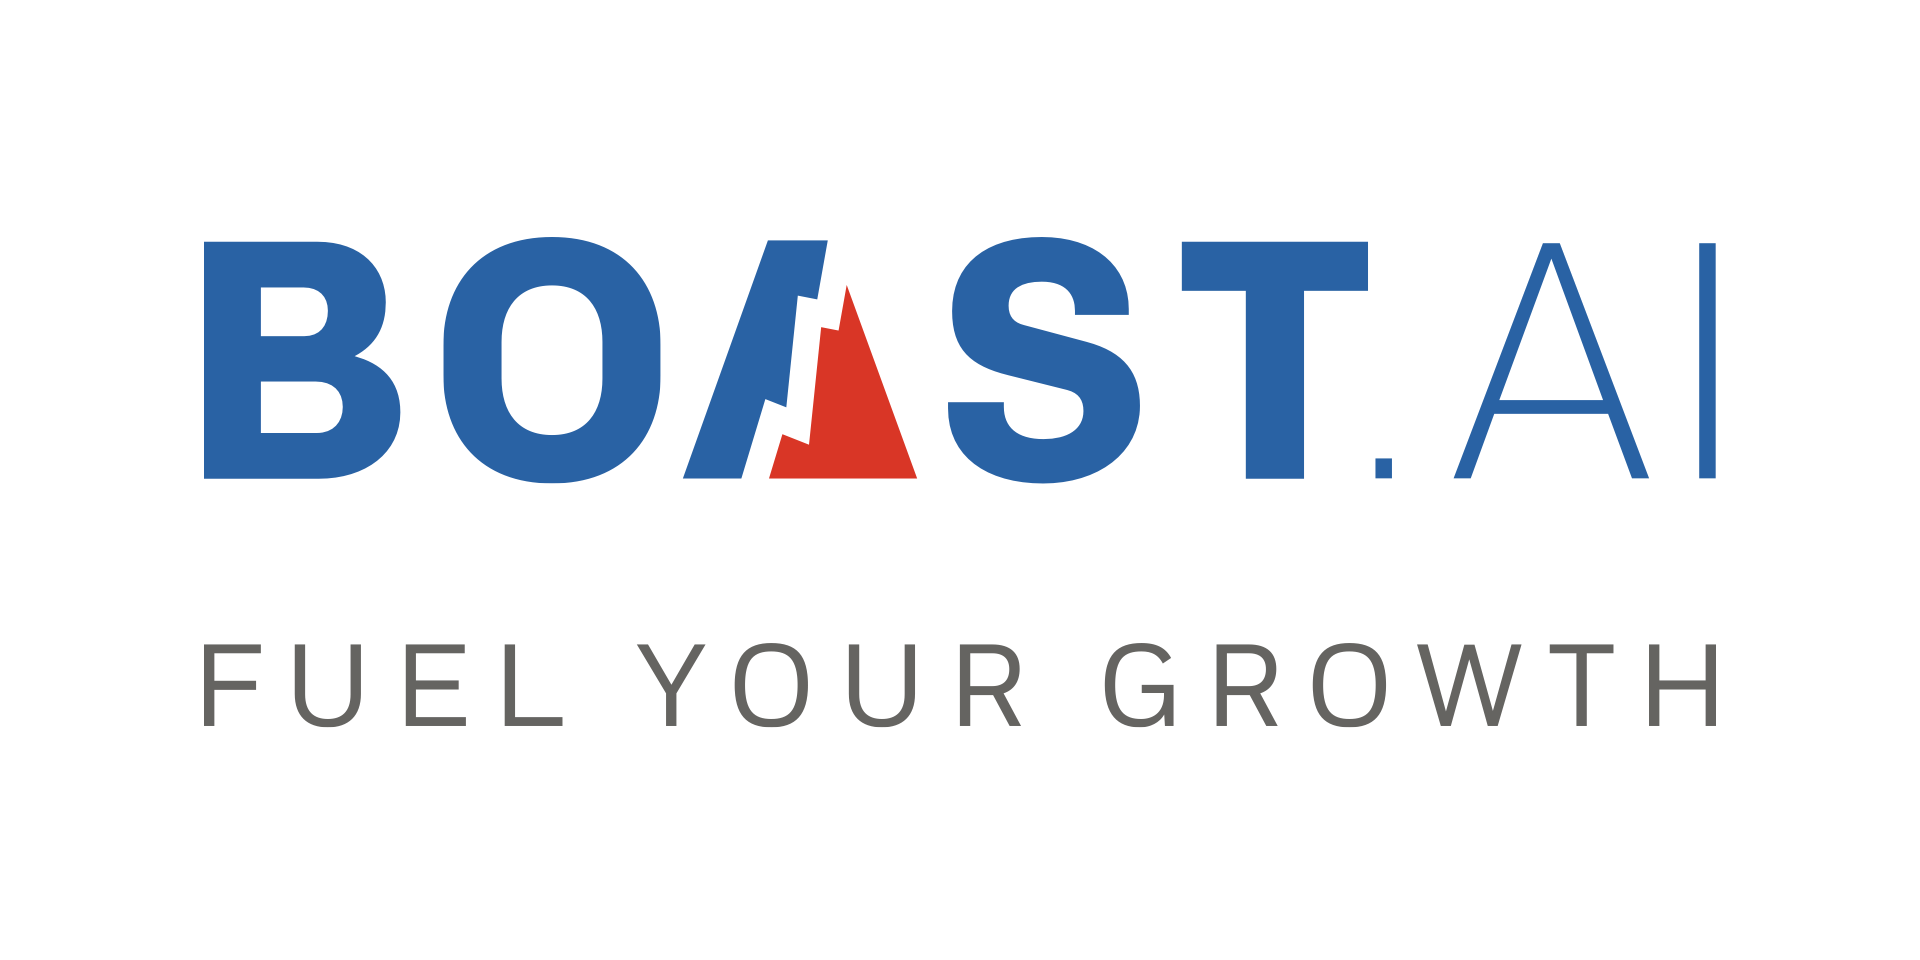 boast-logo-tagline-lockup-color@3x.png